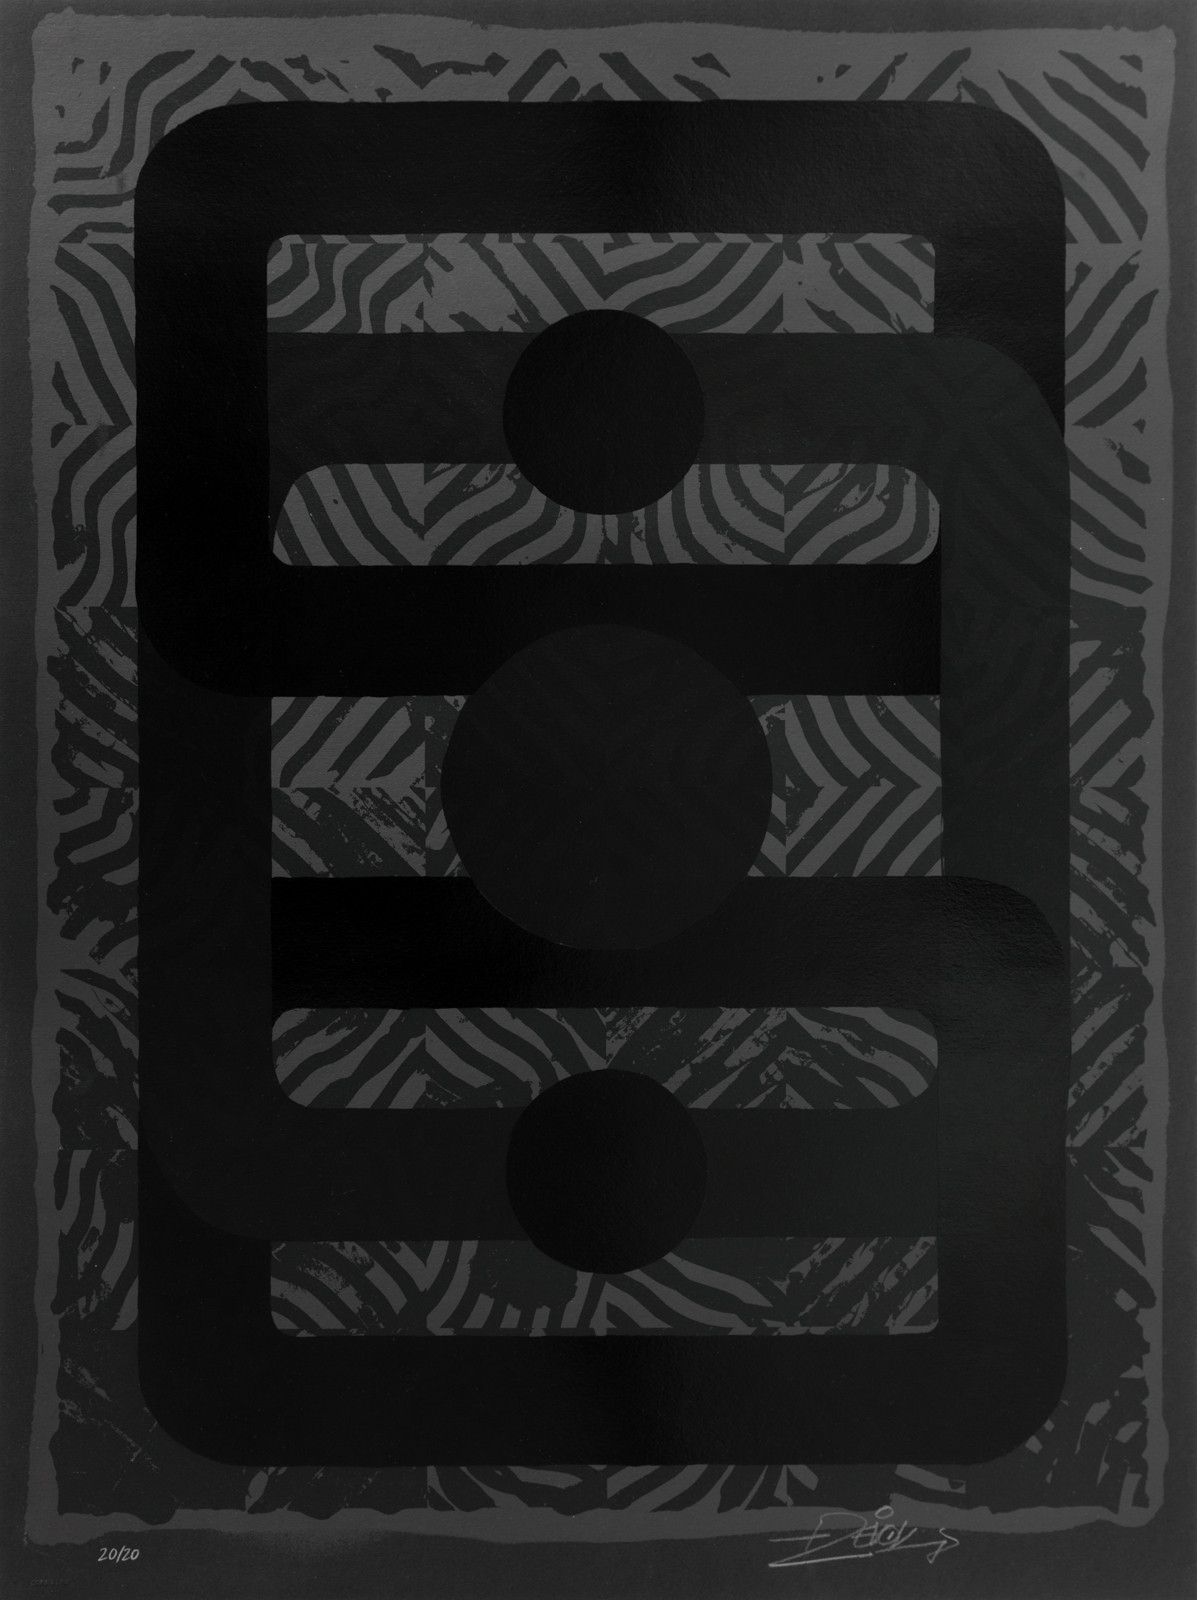 """_0101010_BLK"" by Revok.  60 x 80cm 4-color Screenprint.  Ed of 20 S/N.  €480 ($522)"